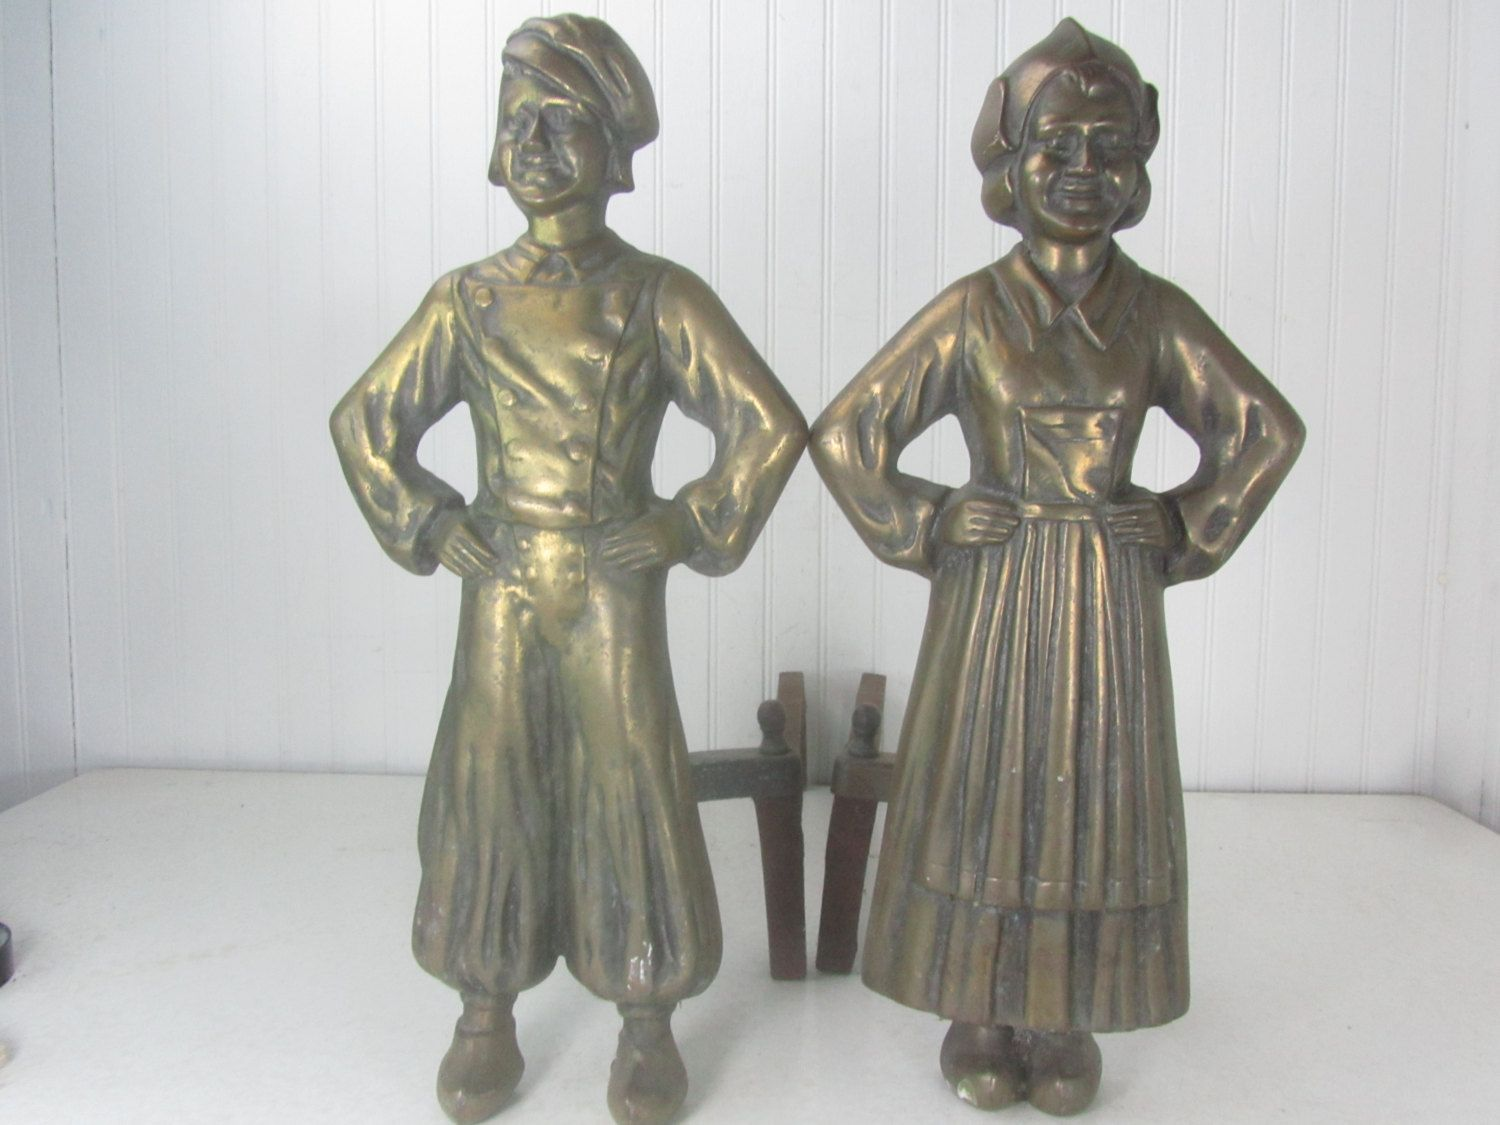 Antique Dutch Boy And Girl Andirons Brass Andirons Iron Firedogs Cast Iron Andirons By